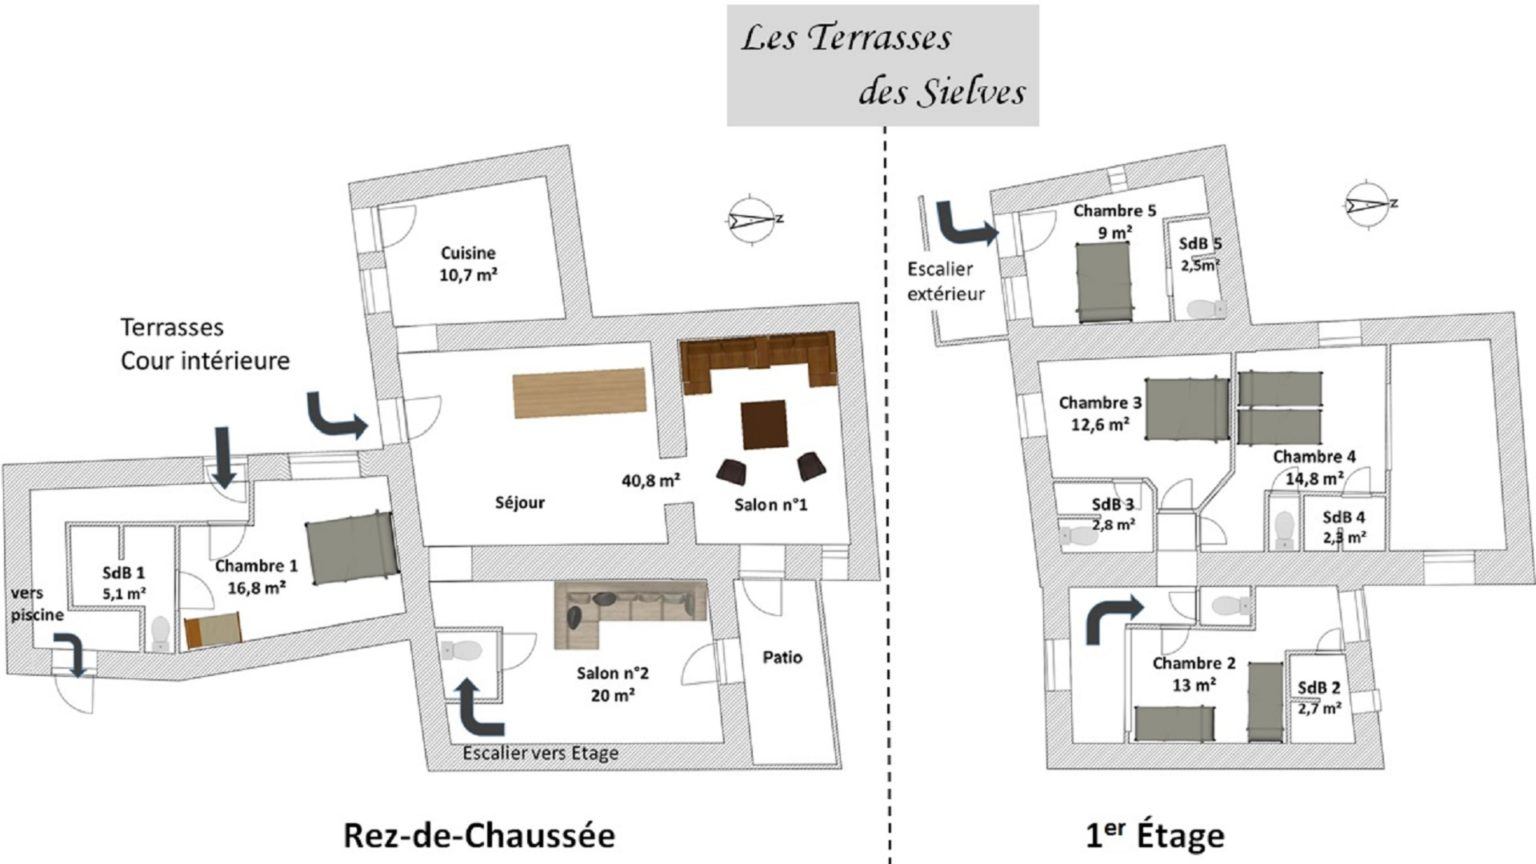 Les Terrasses des Sielves - Map of the premises